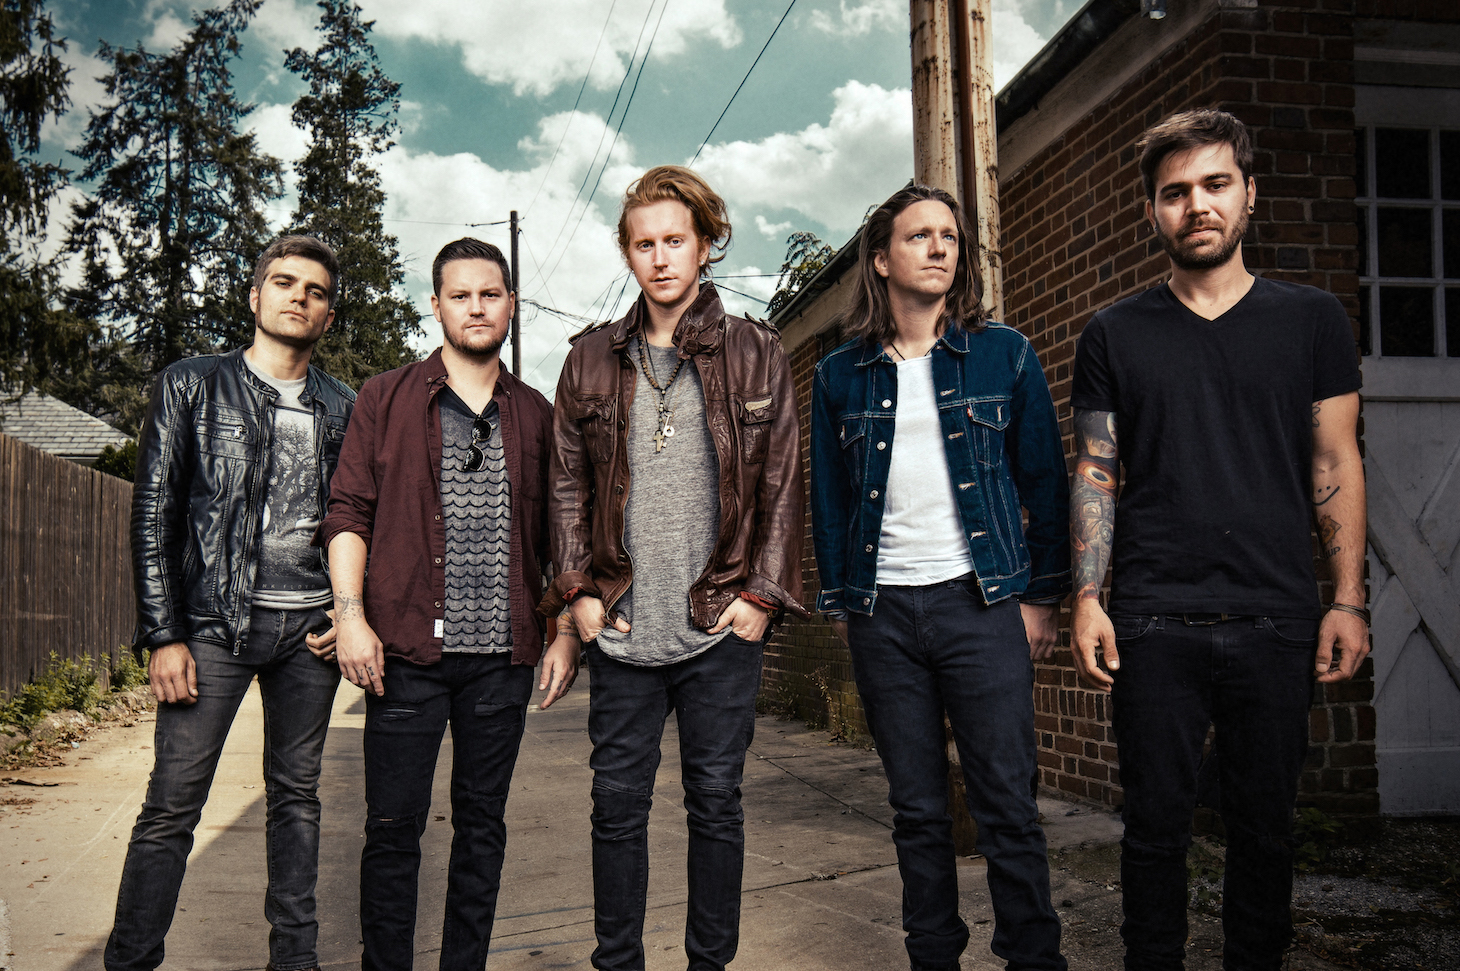 Fanbassador will run a We The Kings crowd funding-contest beginning on Dec. 7.